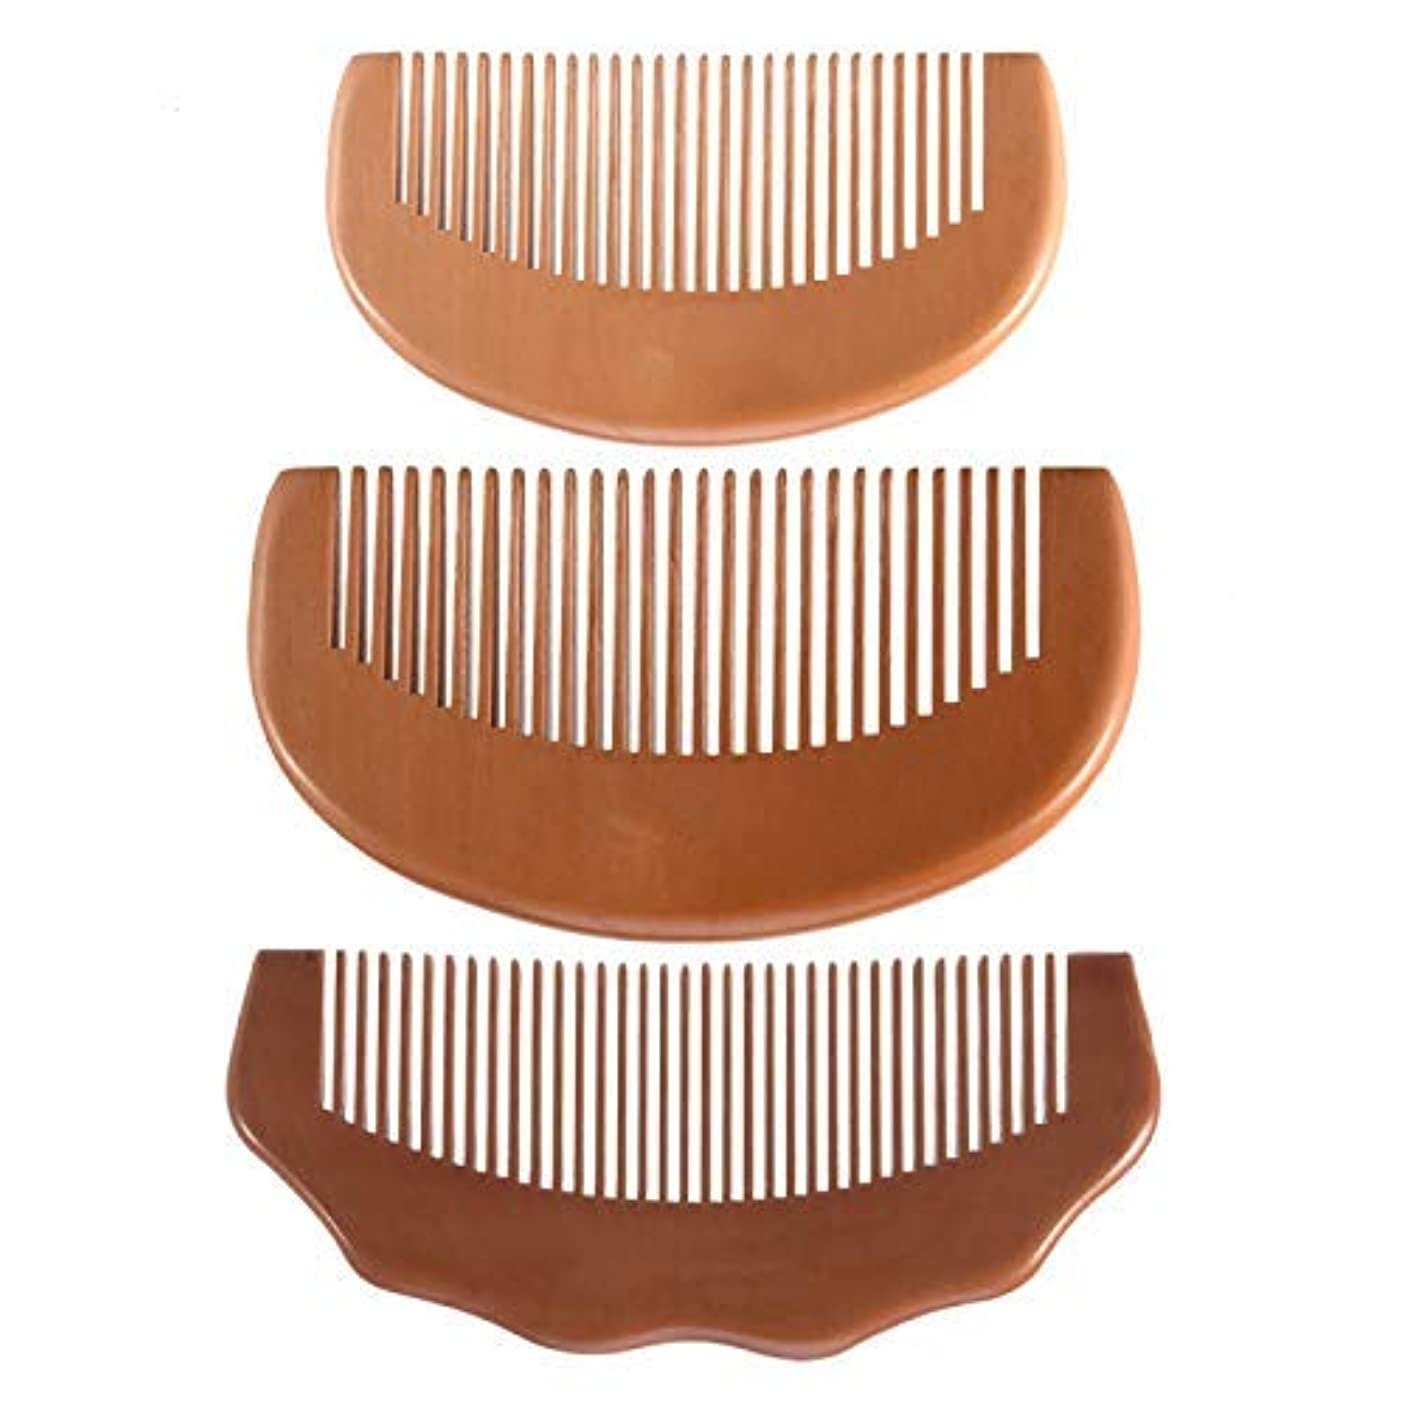 サーキットに行く判定区Feeko Comb, Natural Anti Static Wooden Comb for Wrapping and Styling Wet Or Dry Curling Thick Wavy Or Straight...